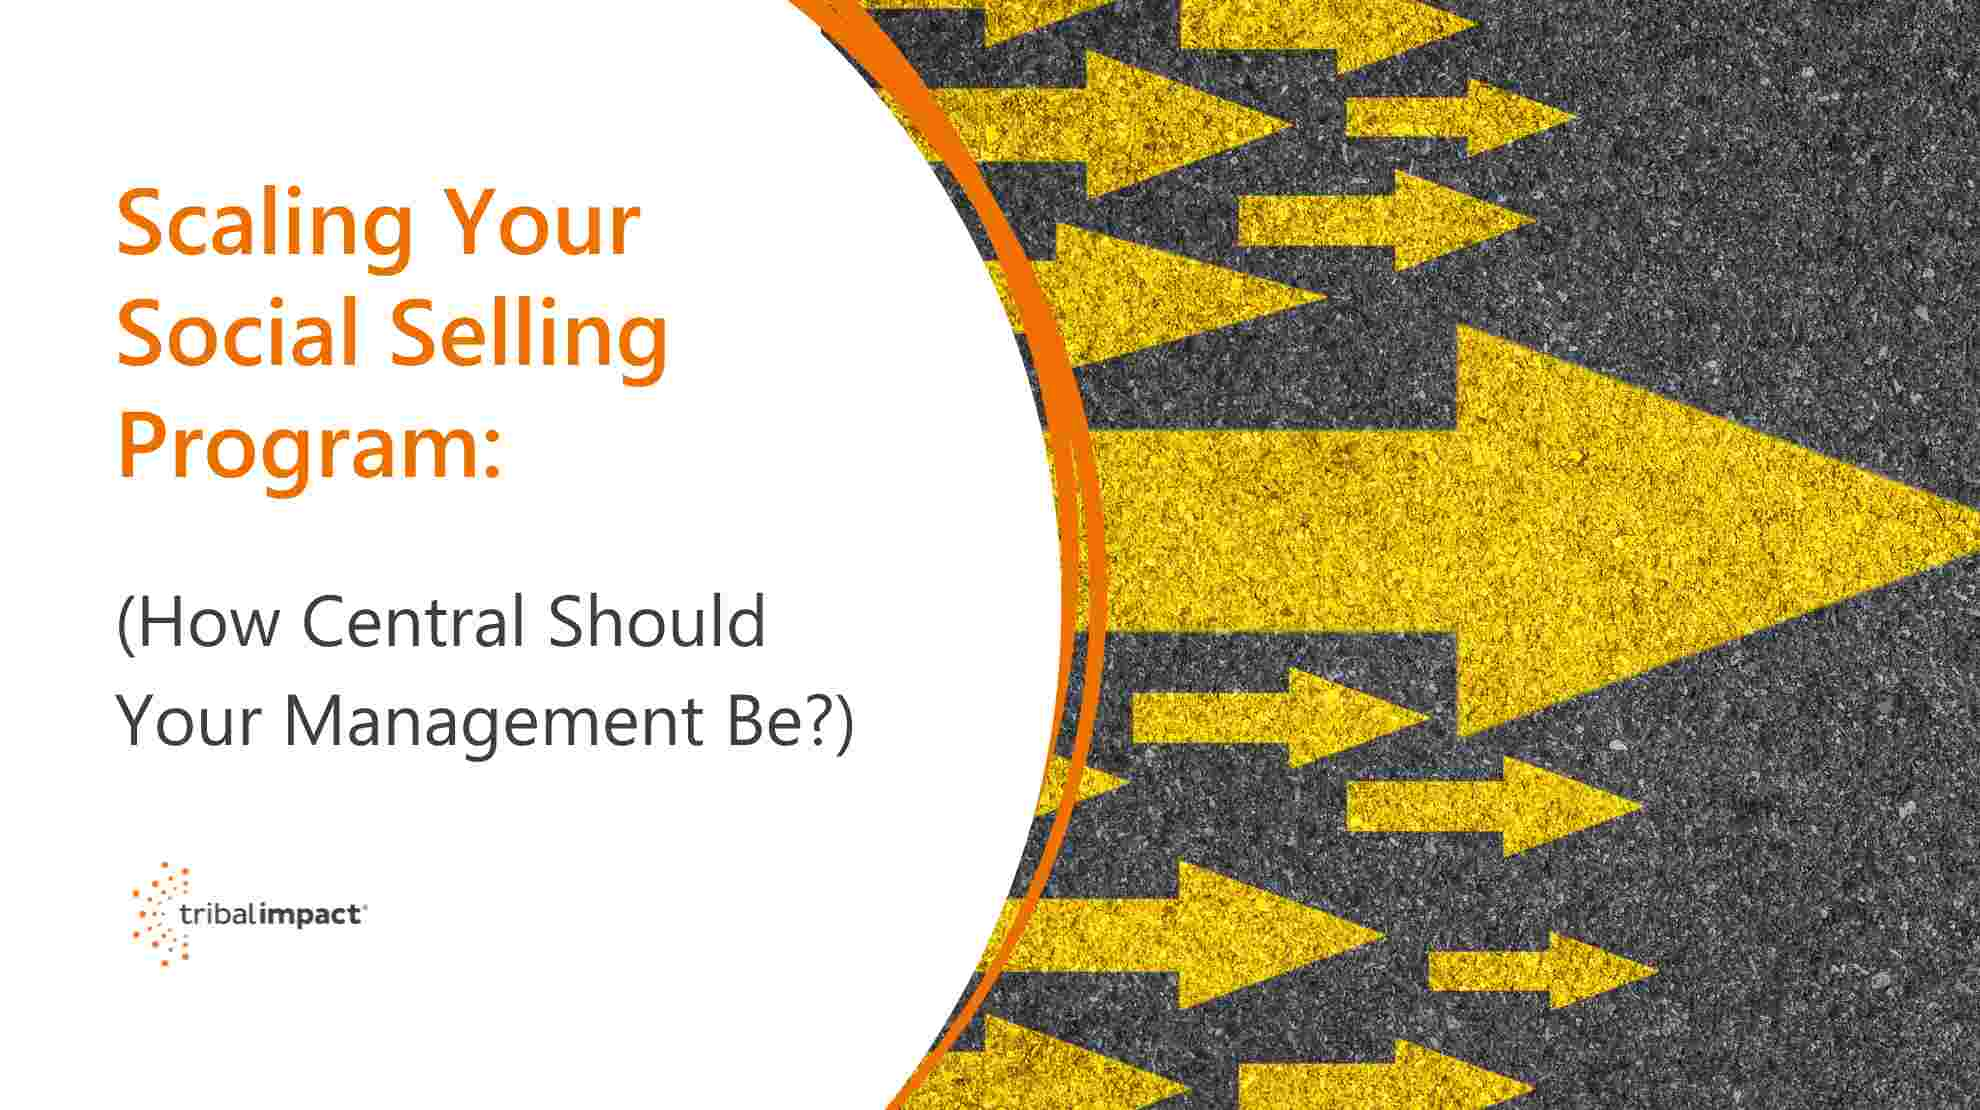 Scaling Your Social Selling Program: How Central Should Your Management Be?